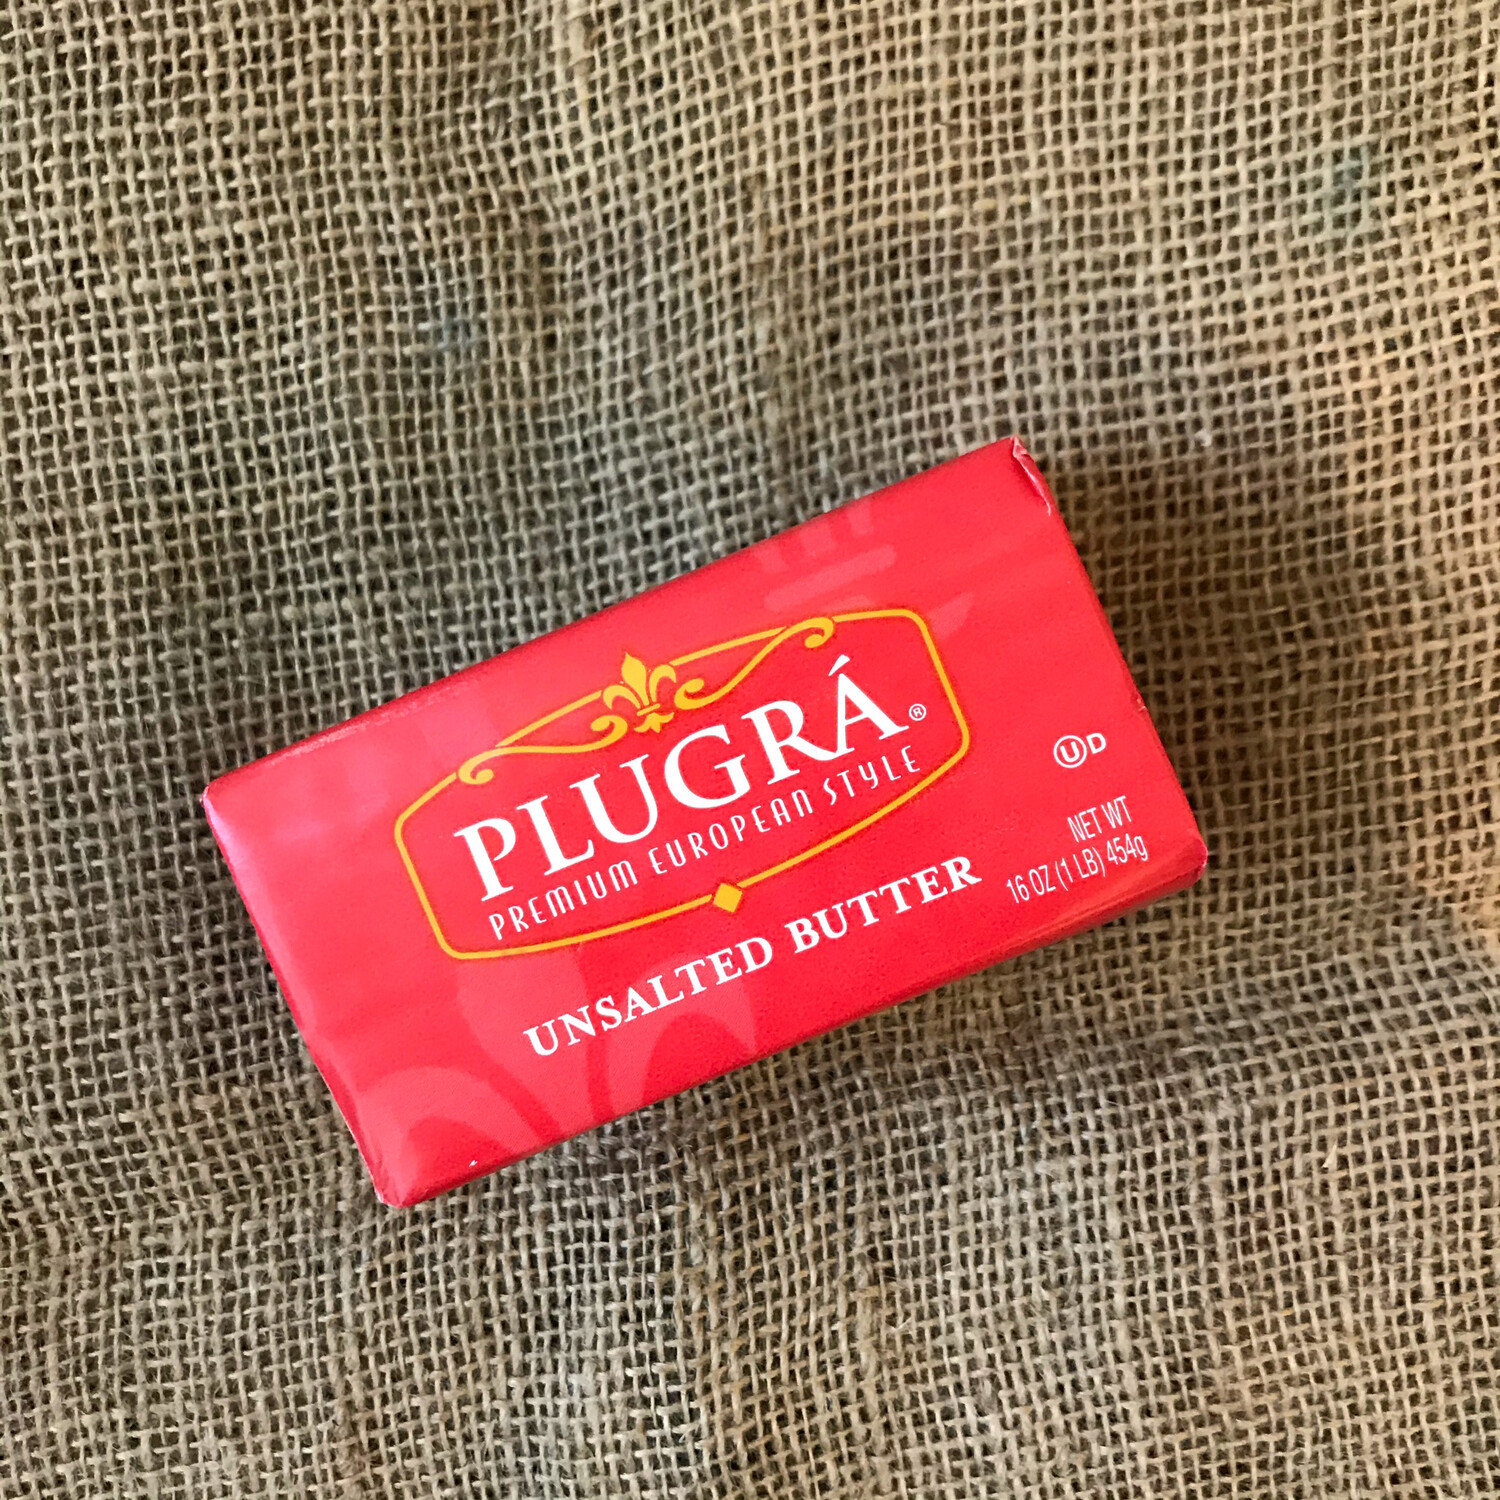 Butter, Plugra Unsalted 1LB